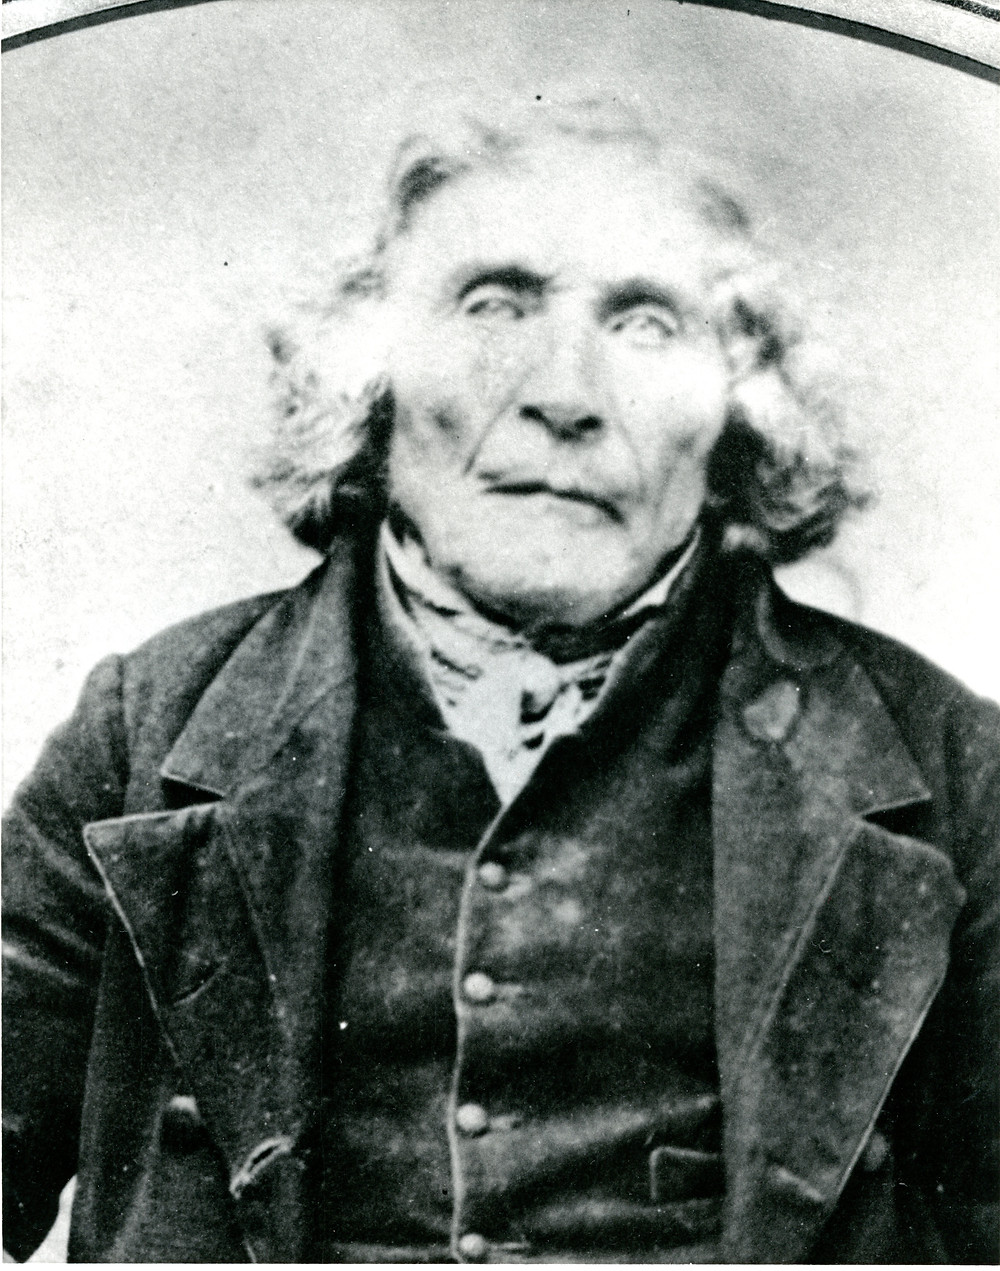 Black and white image of Daniel Stong